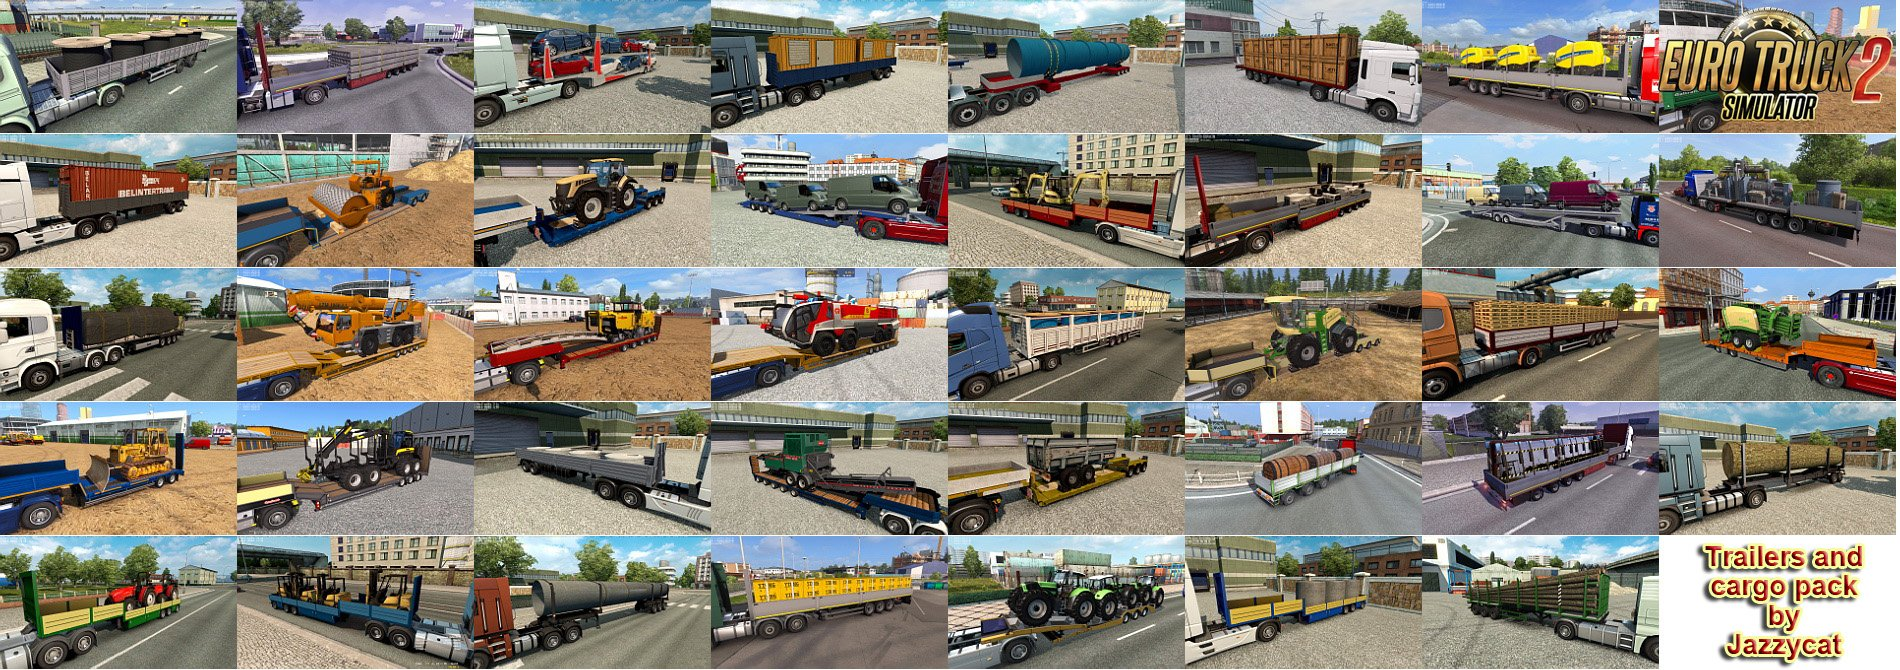 Trailers and Cargo Pack v8.1.1 by Jazzycat (1.36.x)